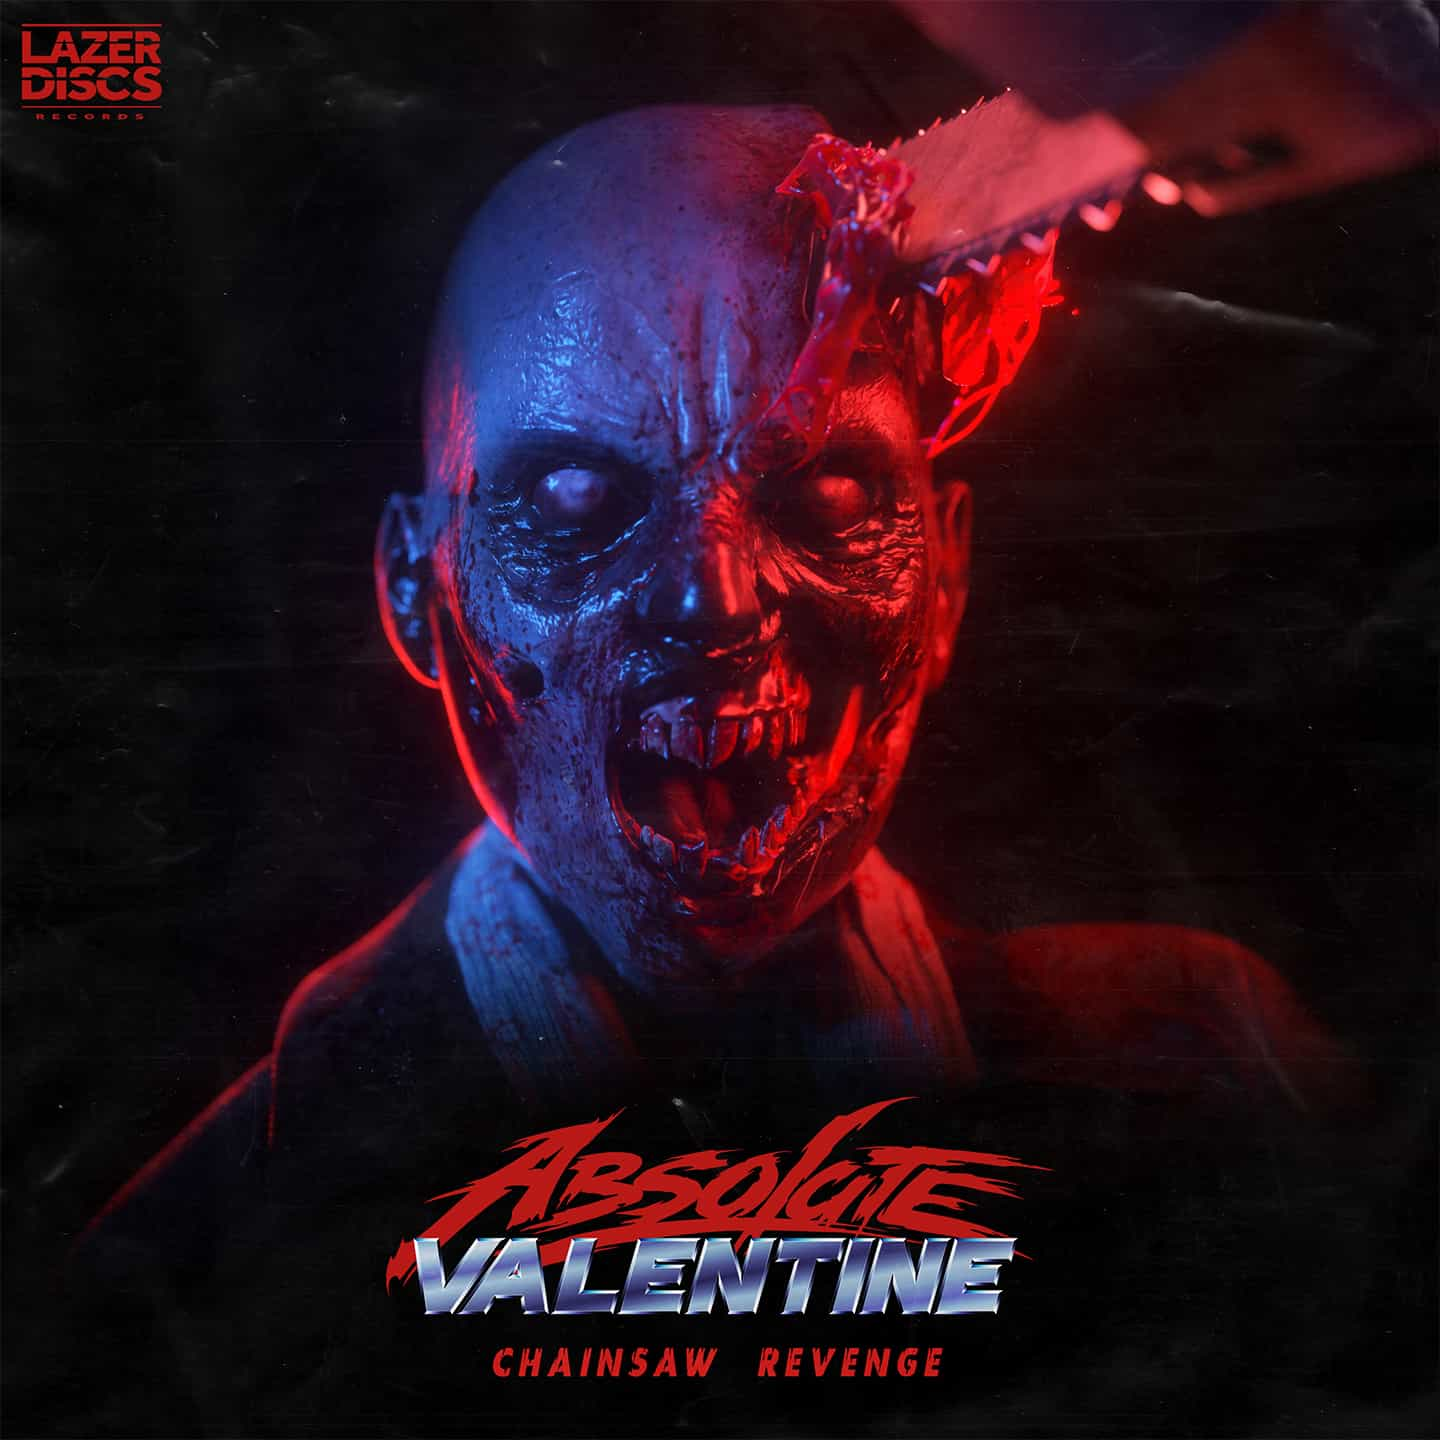 Absolute Valentine - Chainsaw revenge Single Synthwave